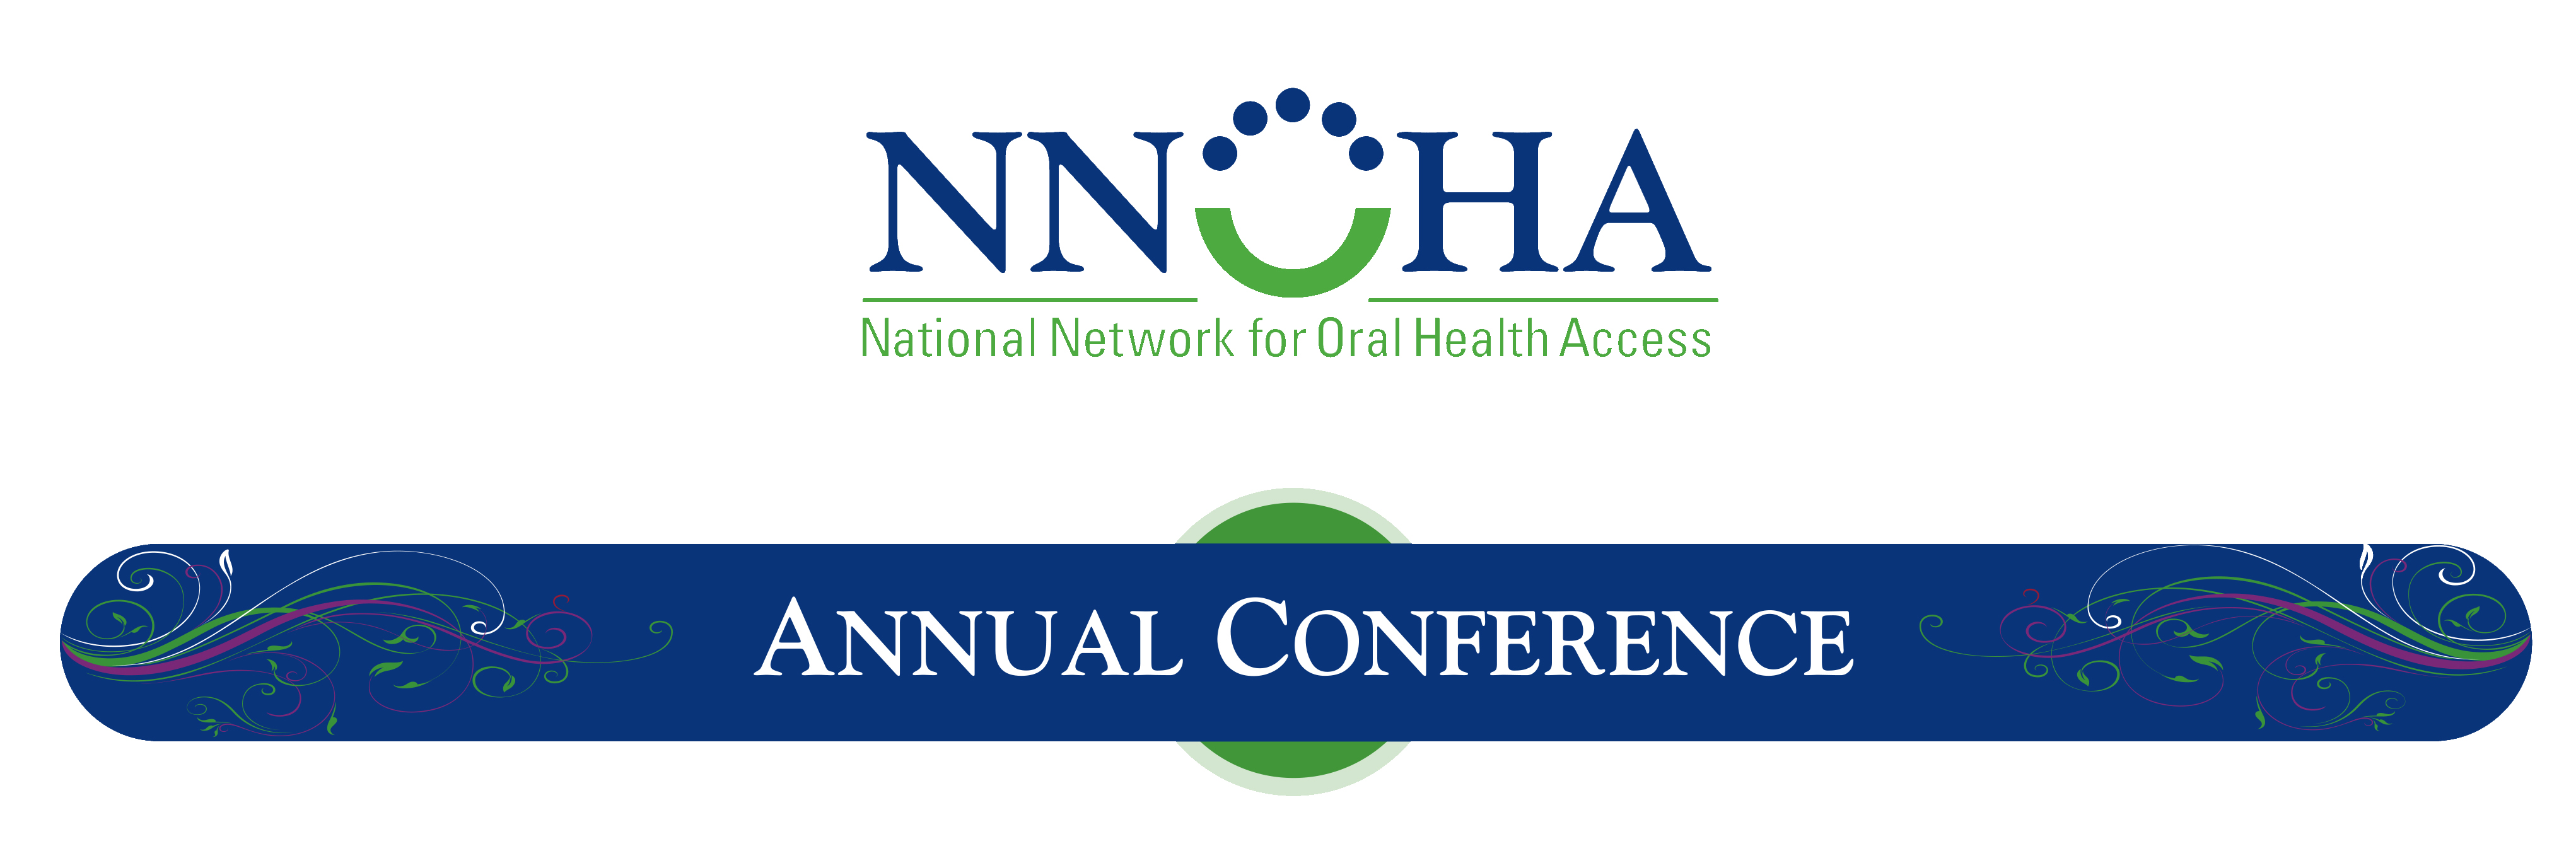 2018 NNOHA Annual Conference